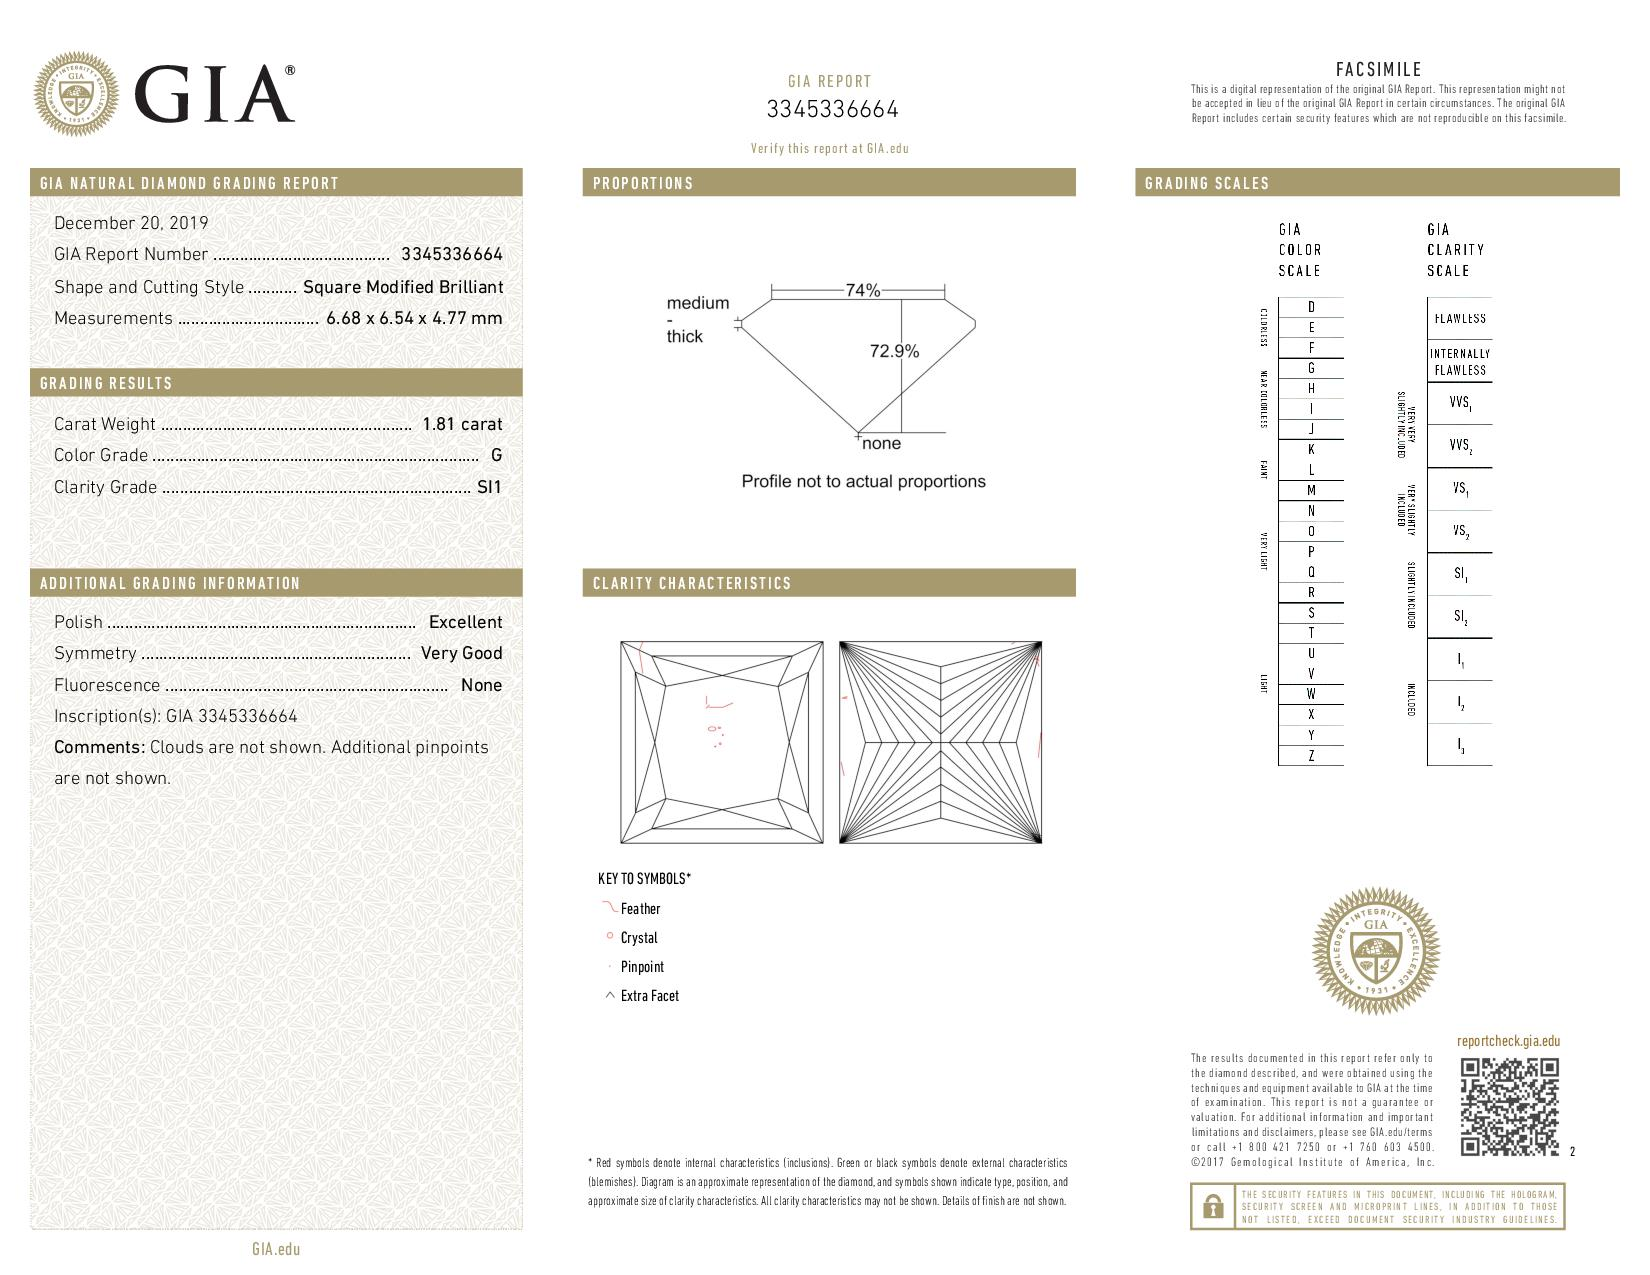 This is a 1.81 carat princess shape, G color, SI1 clarity natural diamond accompanied by a GIA grading report.